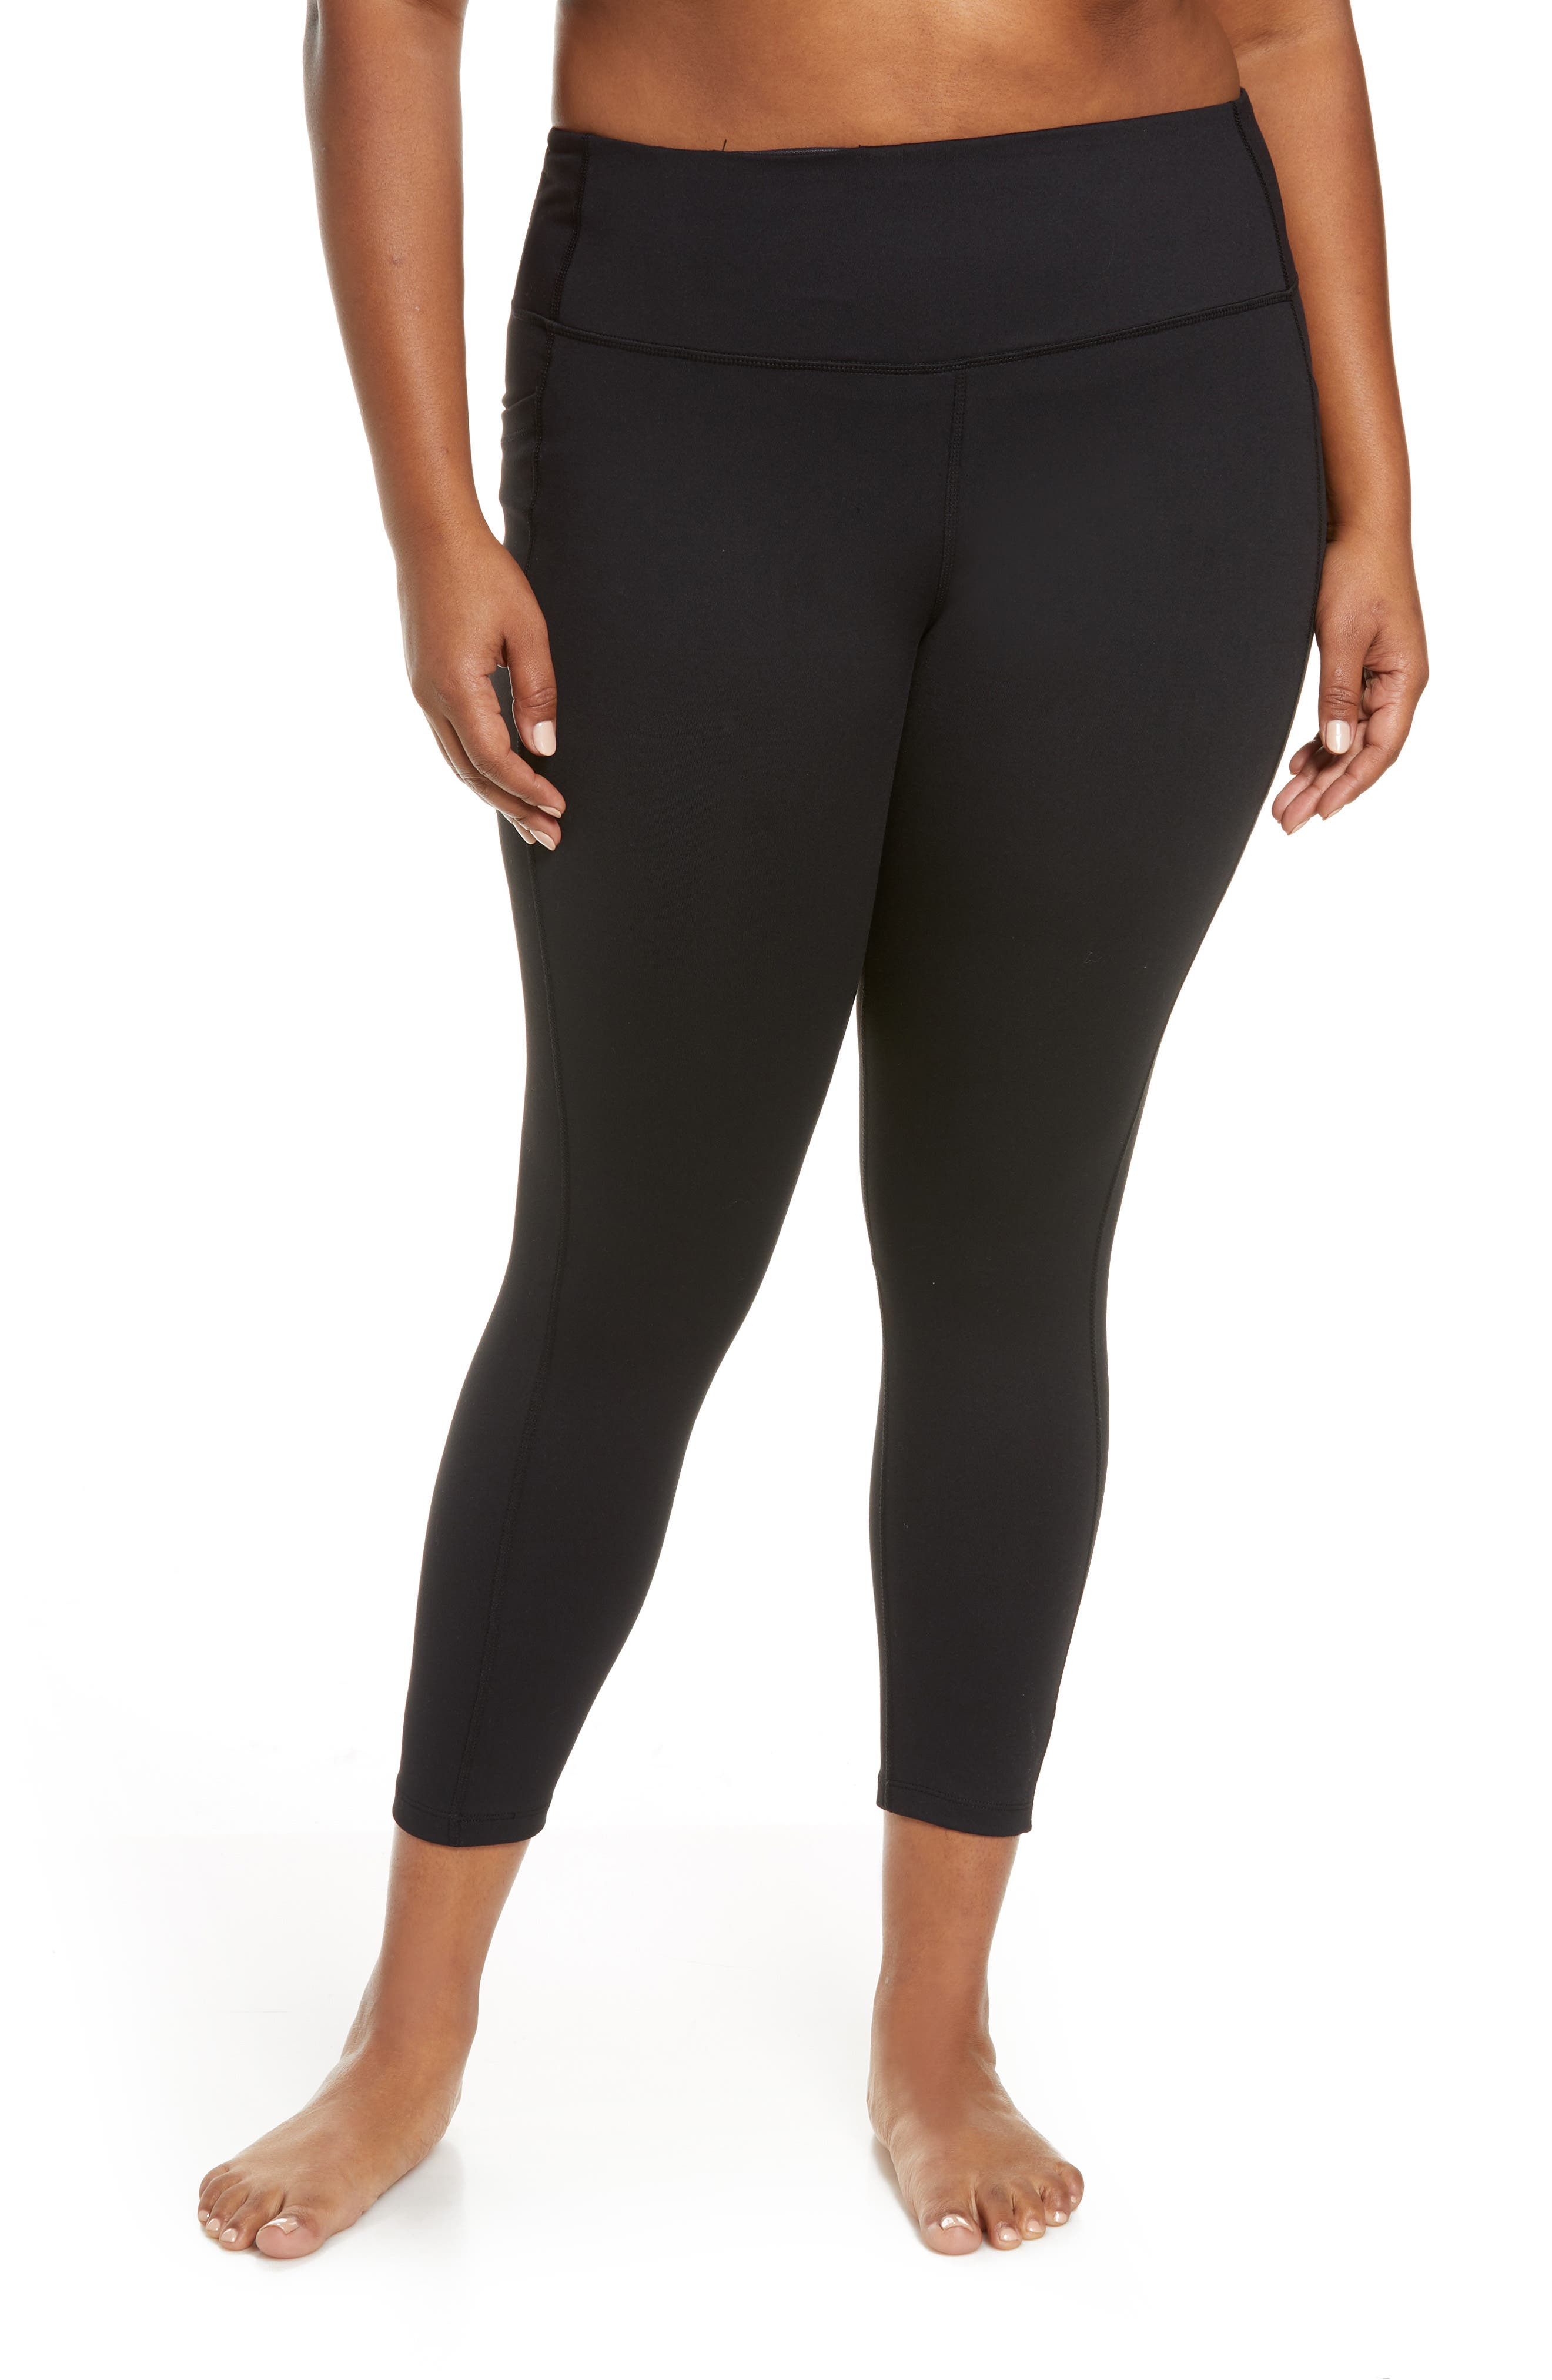 These go-to ankle-length leggings support muscles, smooth curves and optimize your range of motion. The stretch fabric wicks away moisture to keep you cool and comfortable during intense workouts, while handy side pockets stash your phone so you never forget it on equipment. Style Name: Zella High Waist Live In Pocket 7/8 Leggings (Plus Size). Style Number: 6082797. Available in stores.